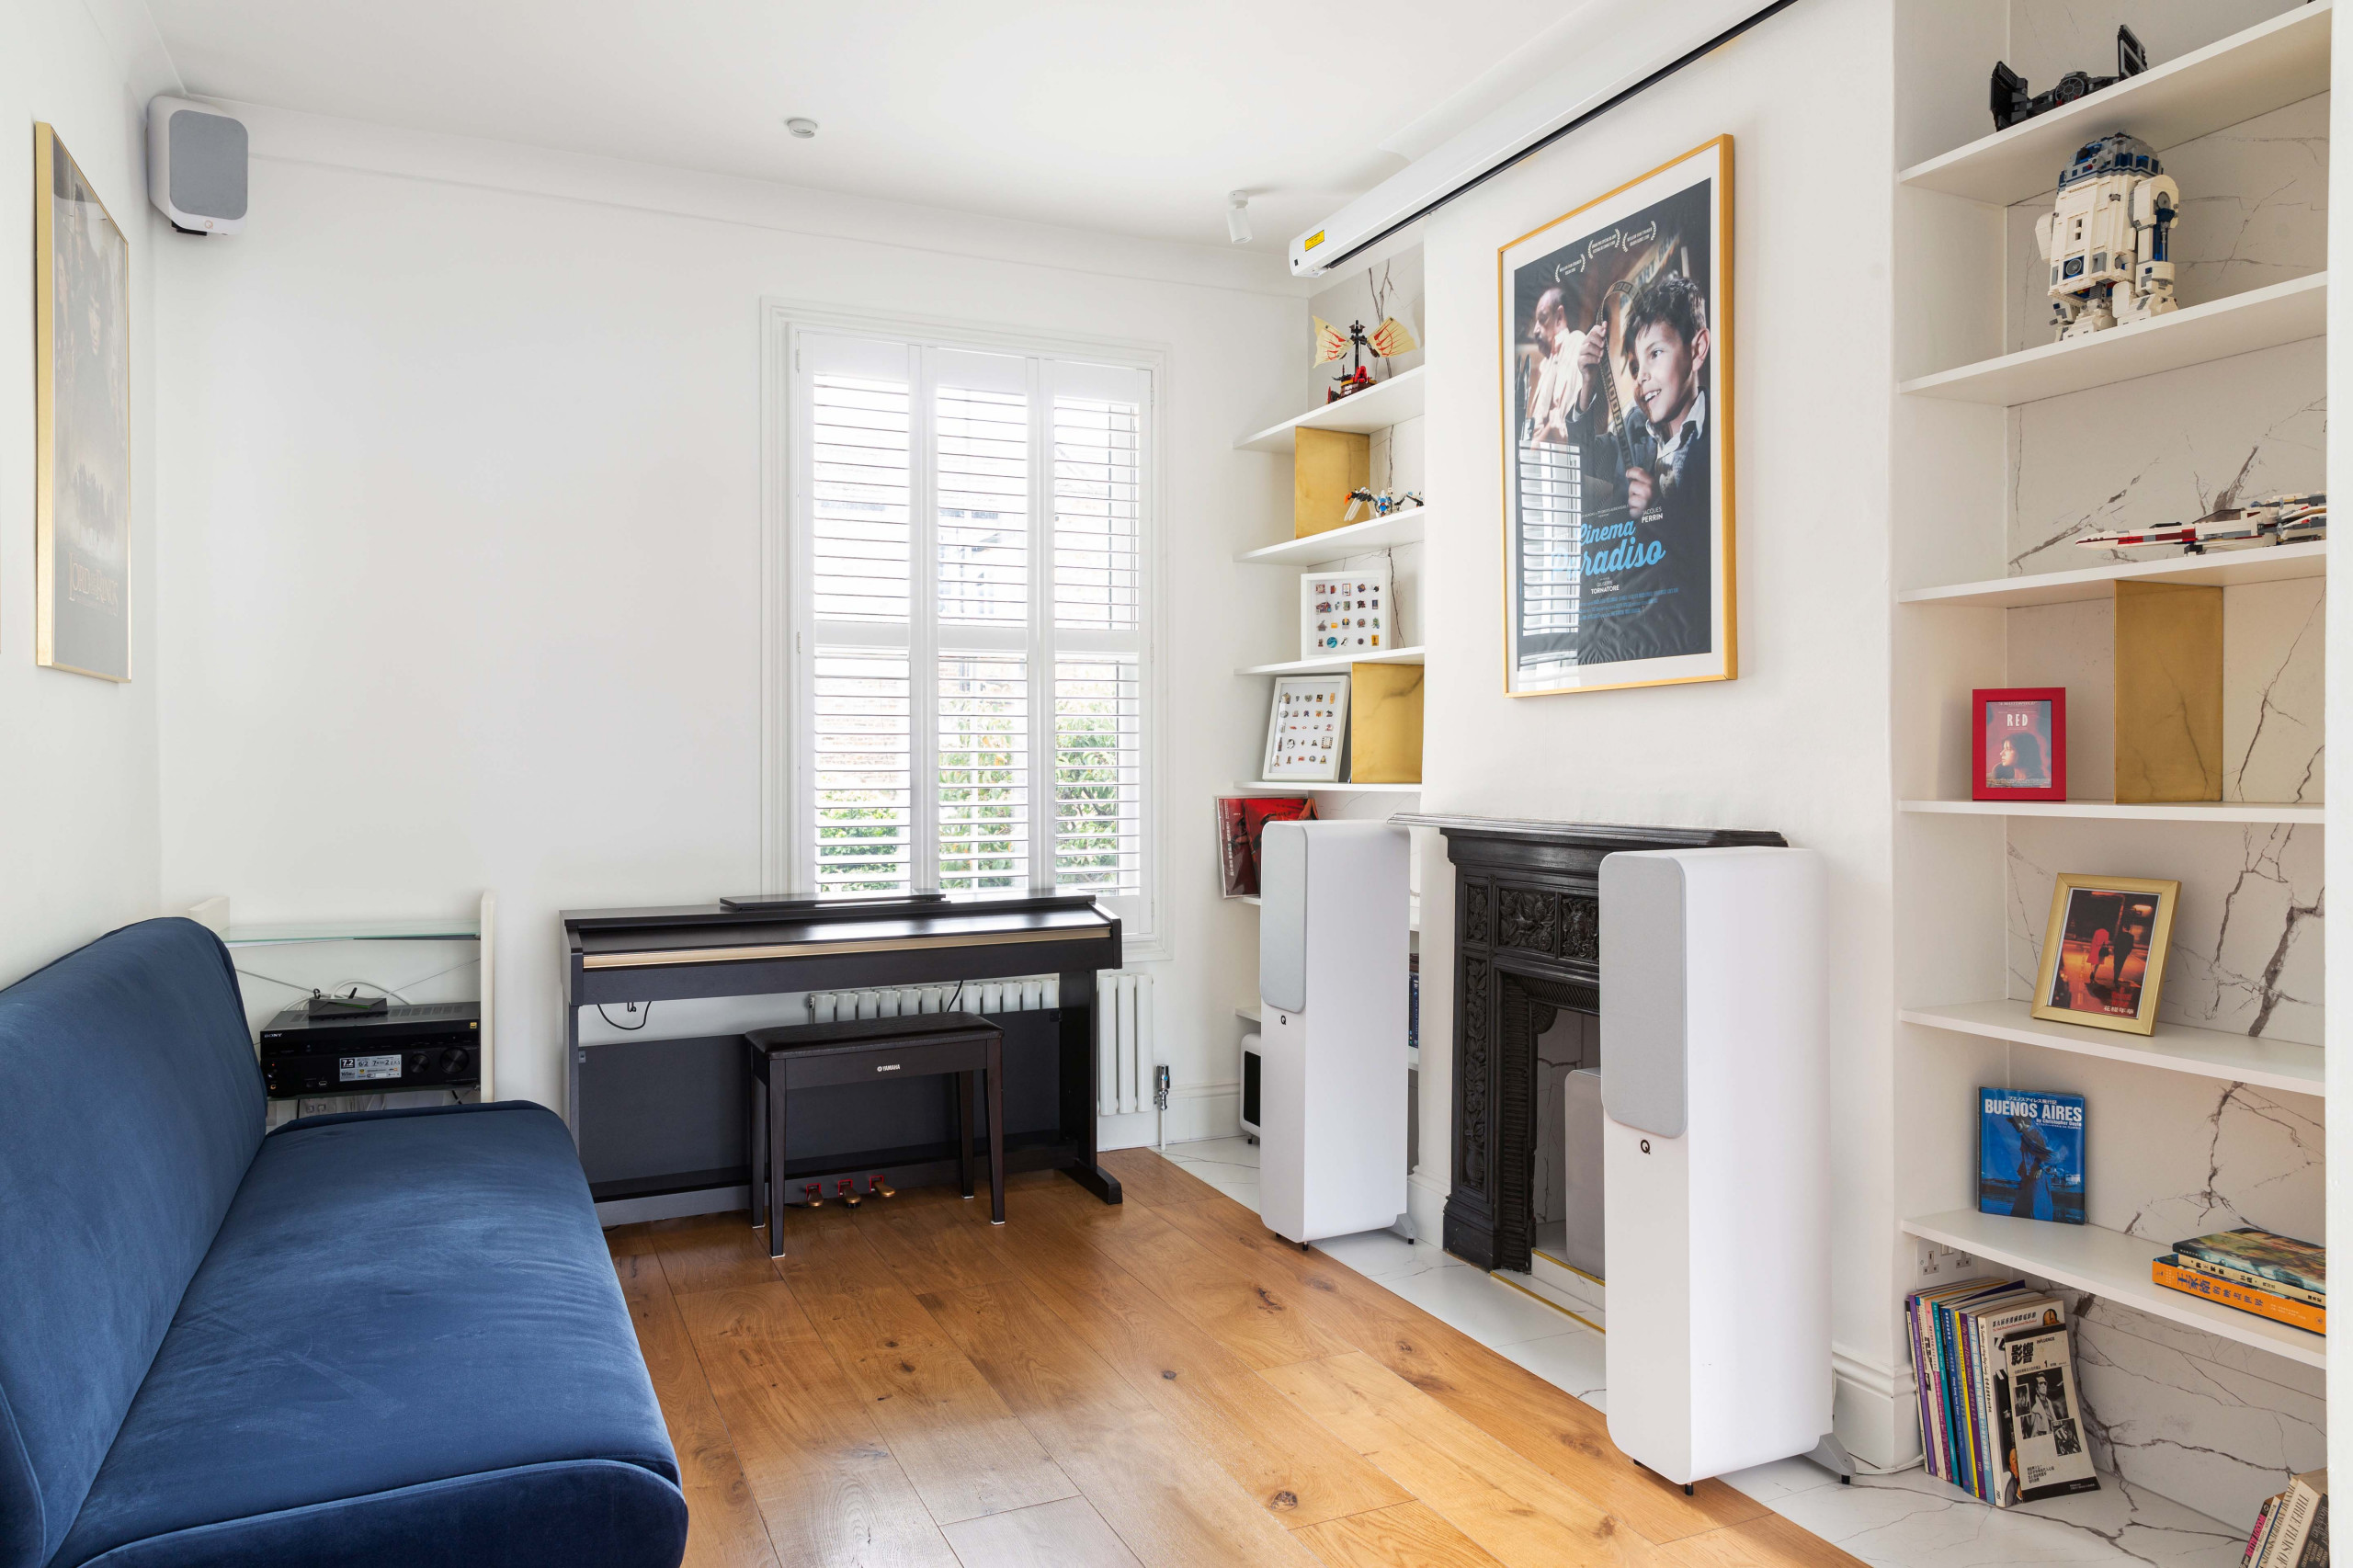 Single family house in West London.